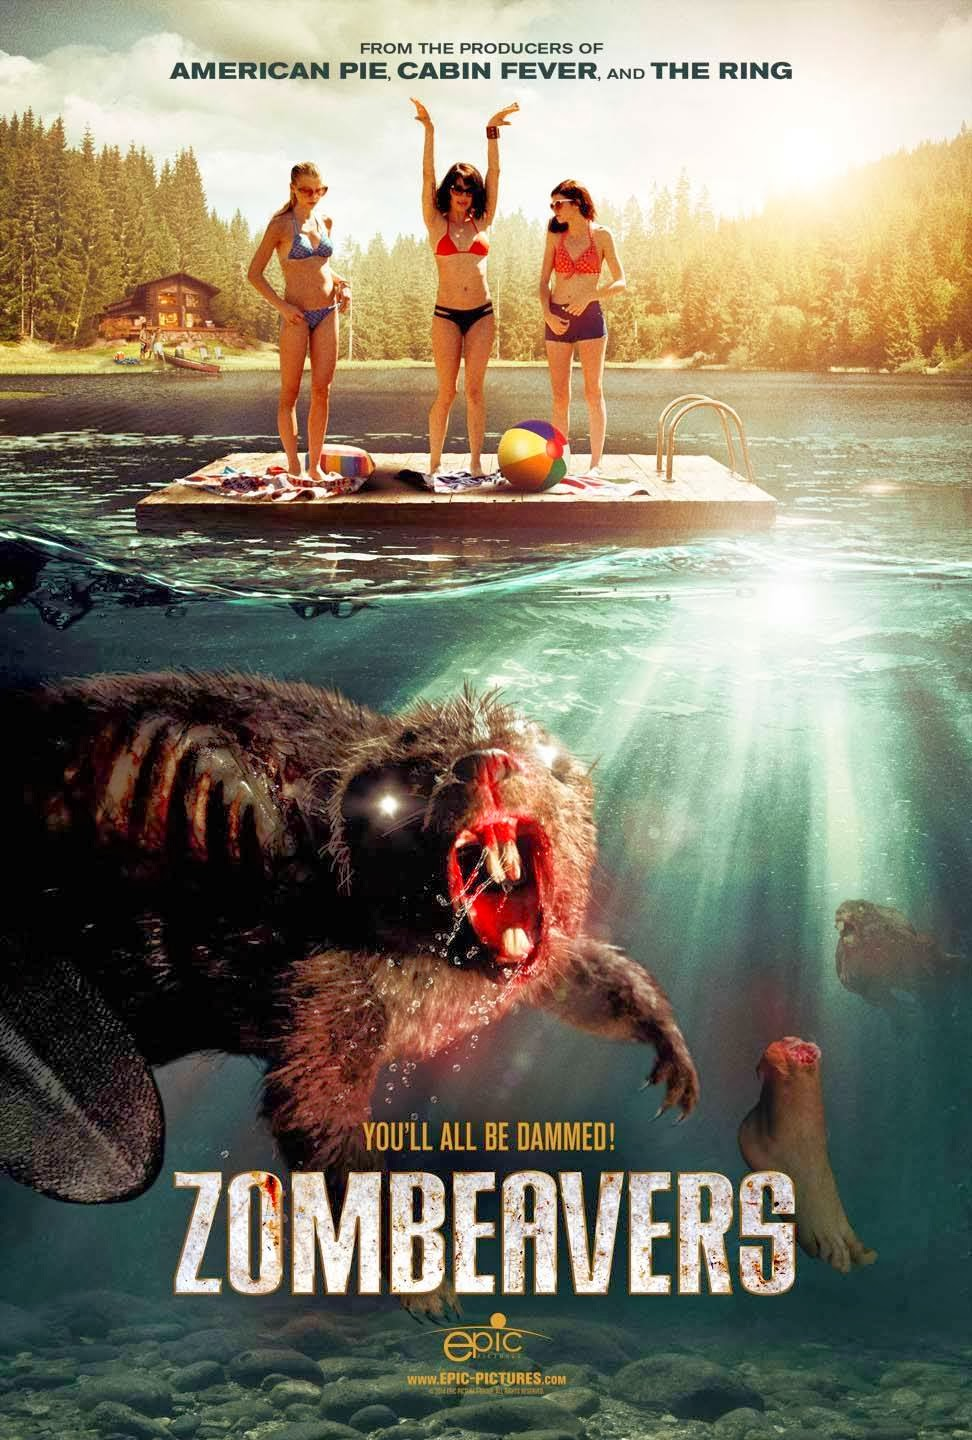 Interview The Cast and Crew Talk Zombeavers Tribeca Film Festival Interview: The Cast and Crew Talk Zombeavers (Tribeca Film Festival)